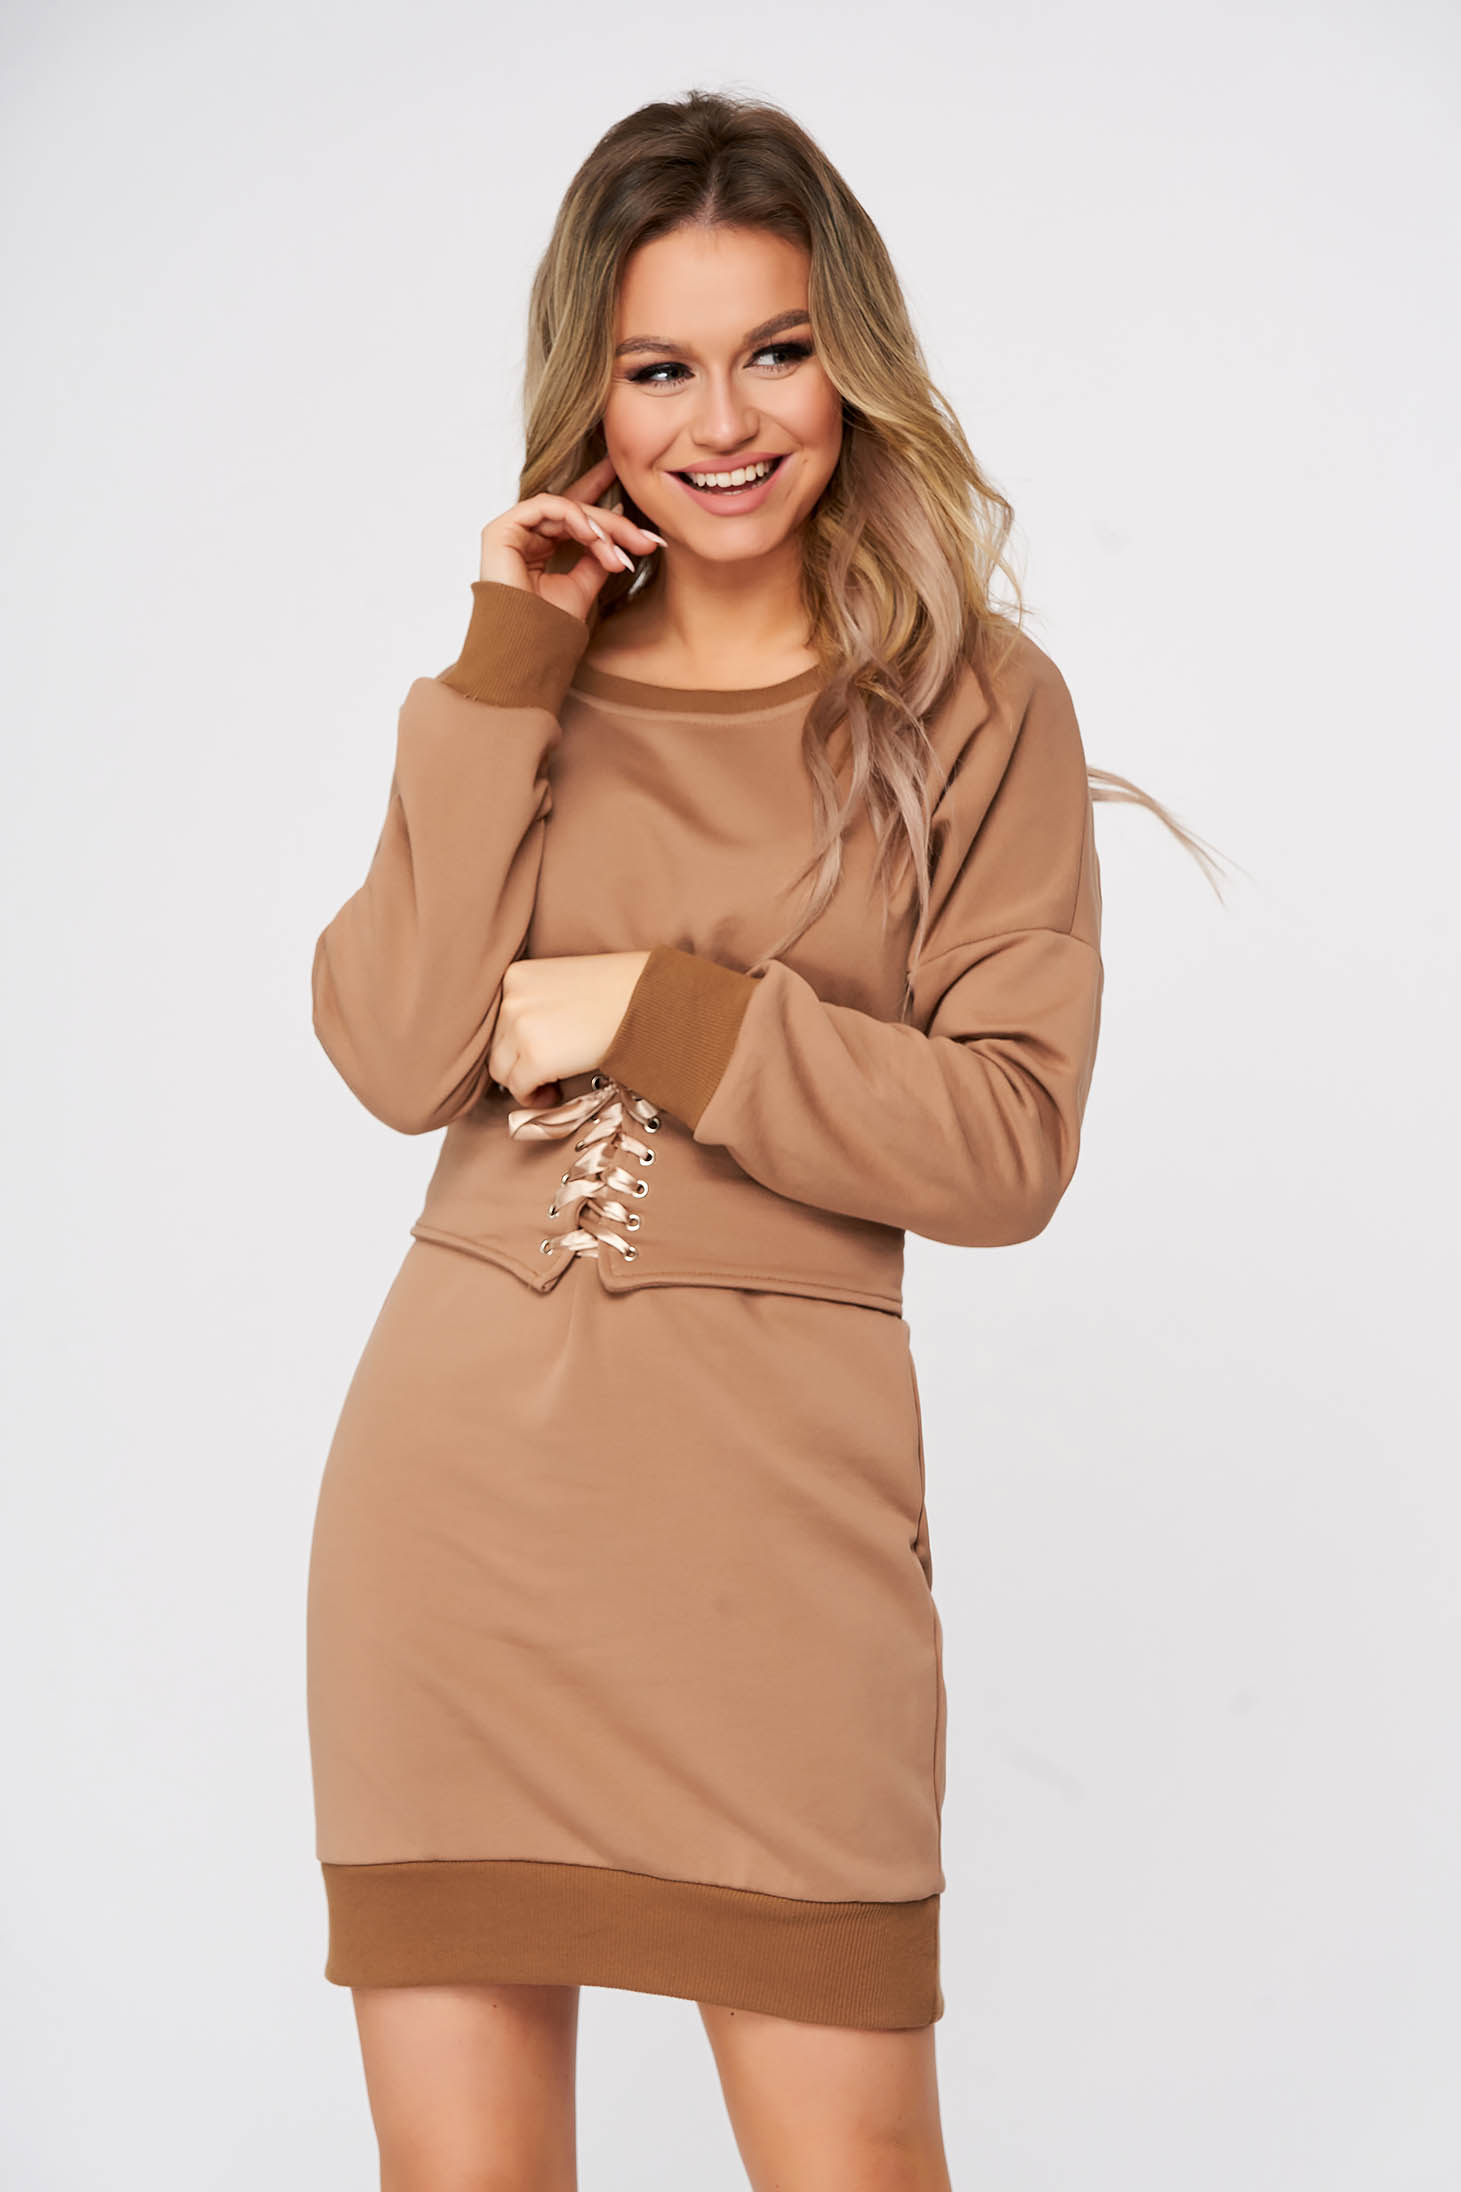 Brown dress short cut daily straight cotton accessorized with belt